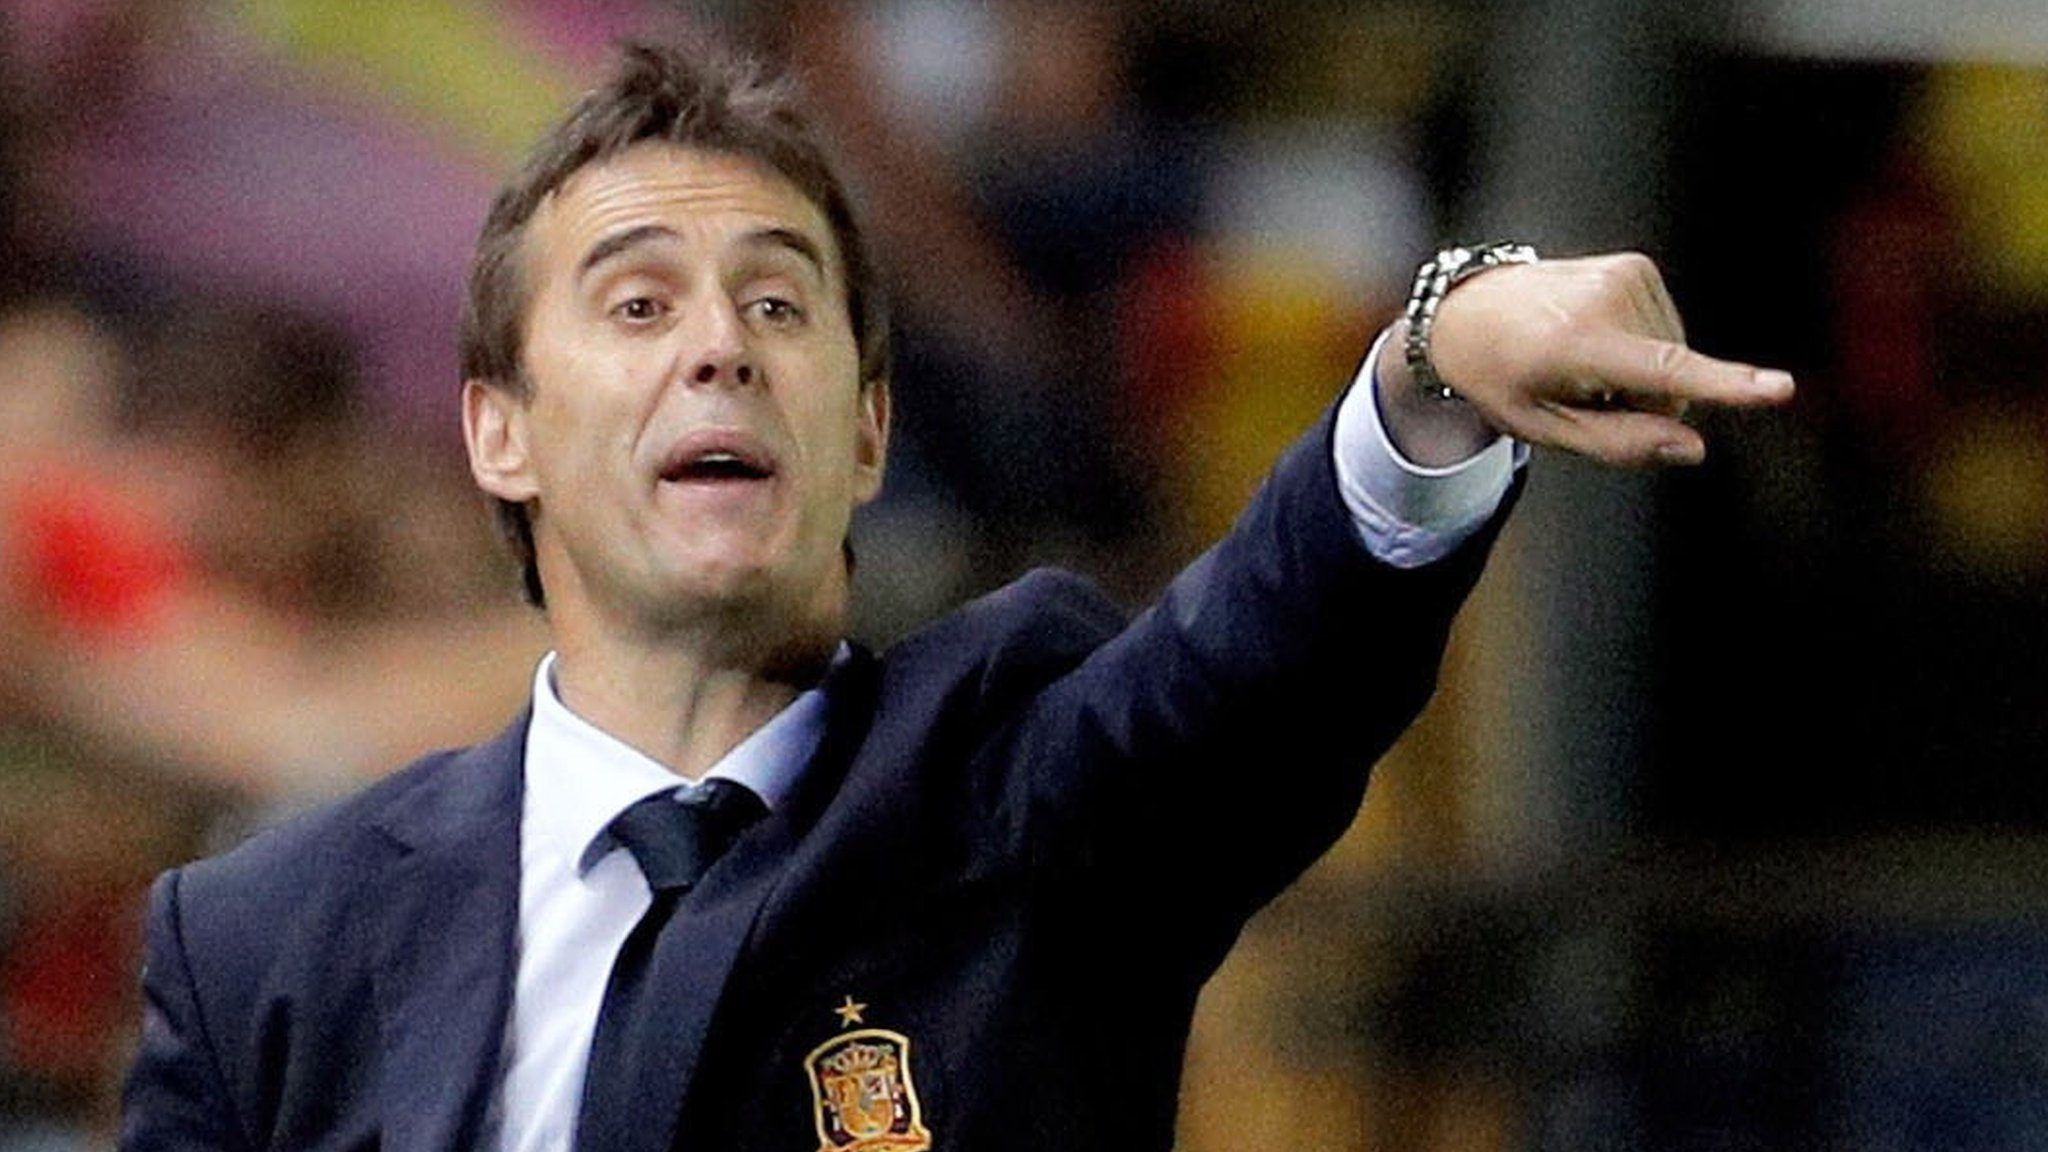 World Cup 2018: Spain sack manager Julen Lopetegui two days before first match